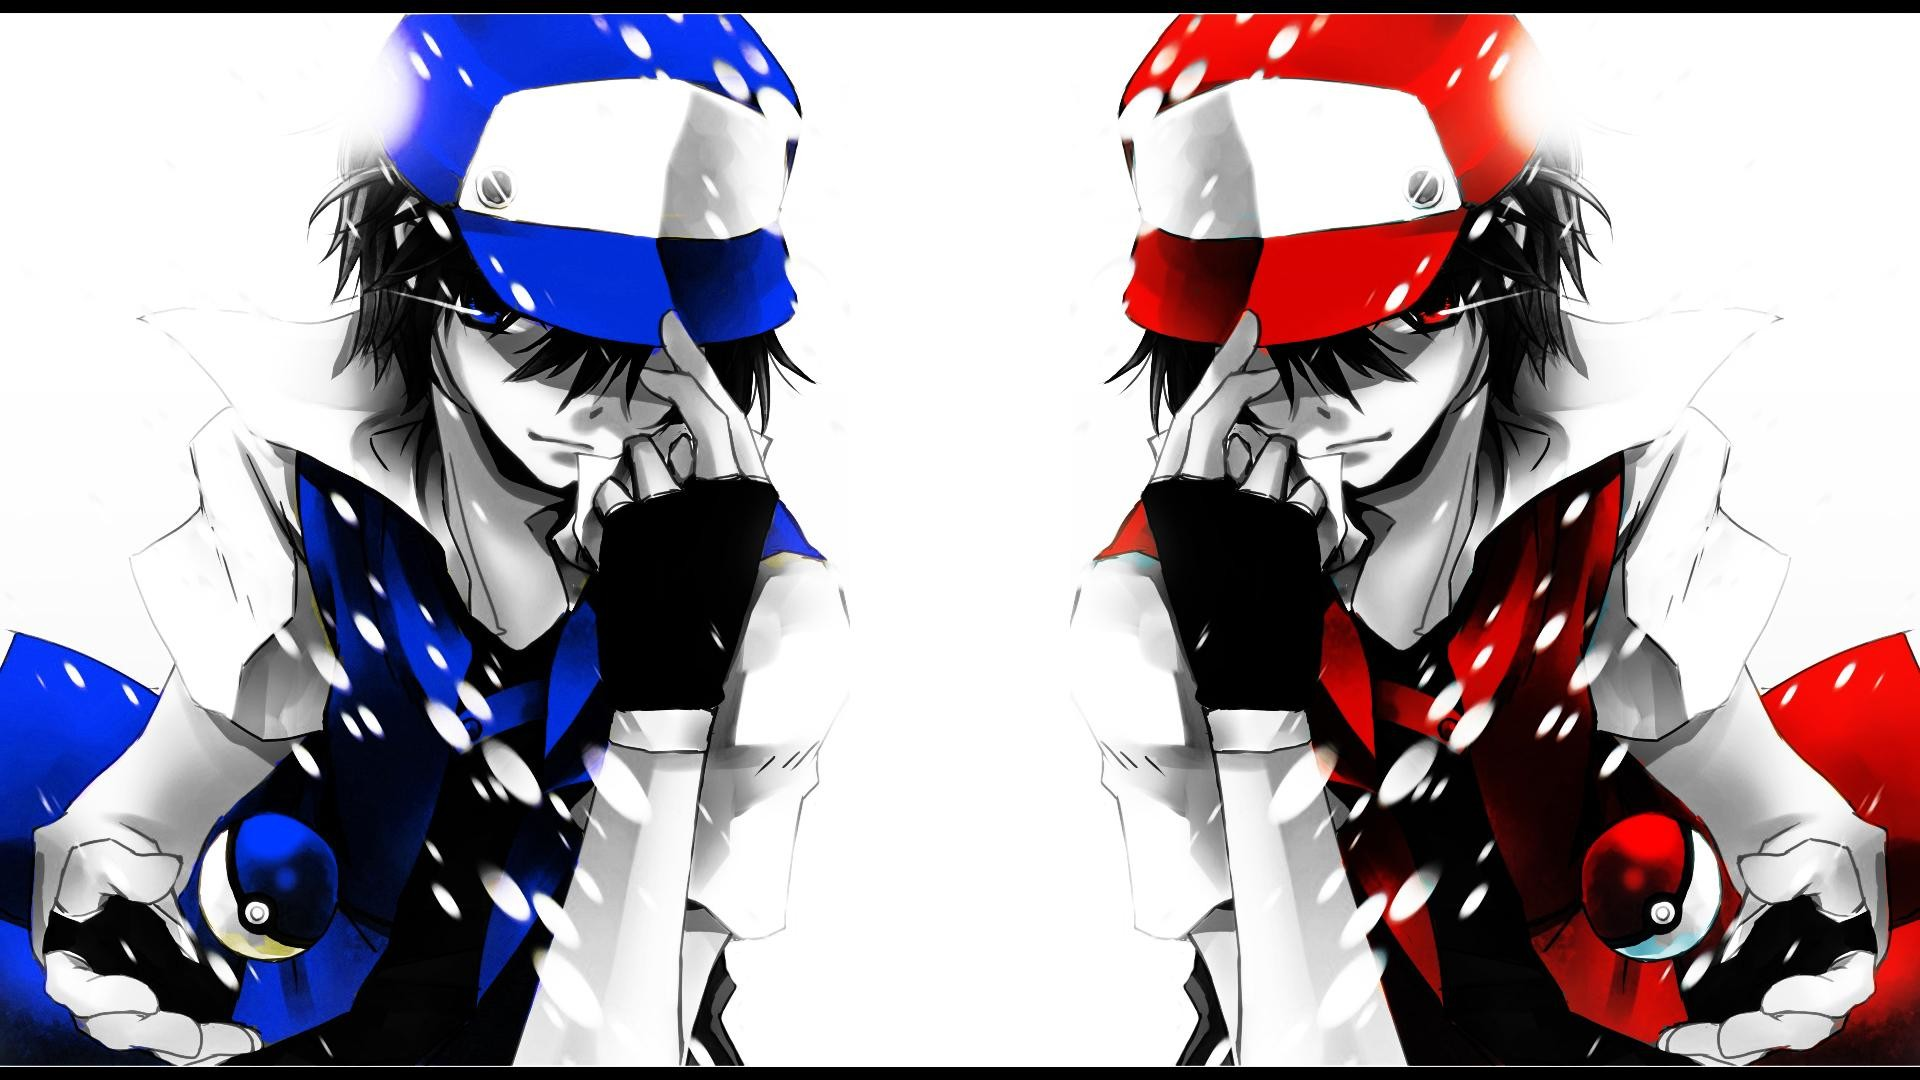 red vs blue wallpapers, top 40 red vs blue backgrounds, #zs42 on Pokemon